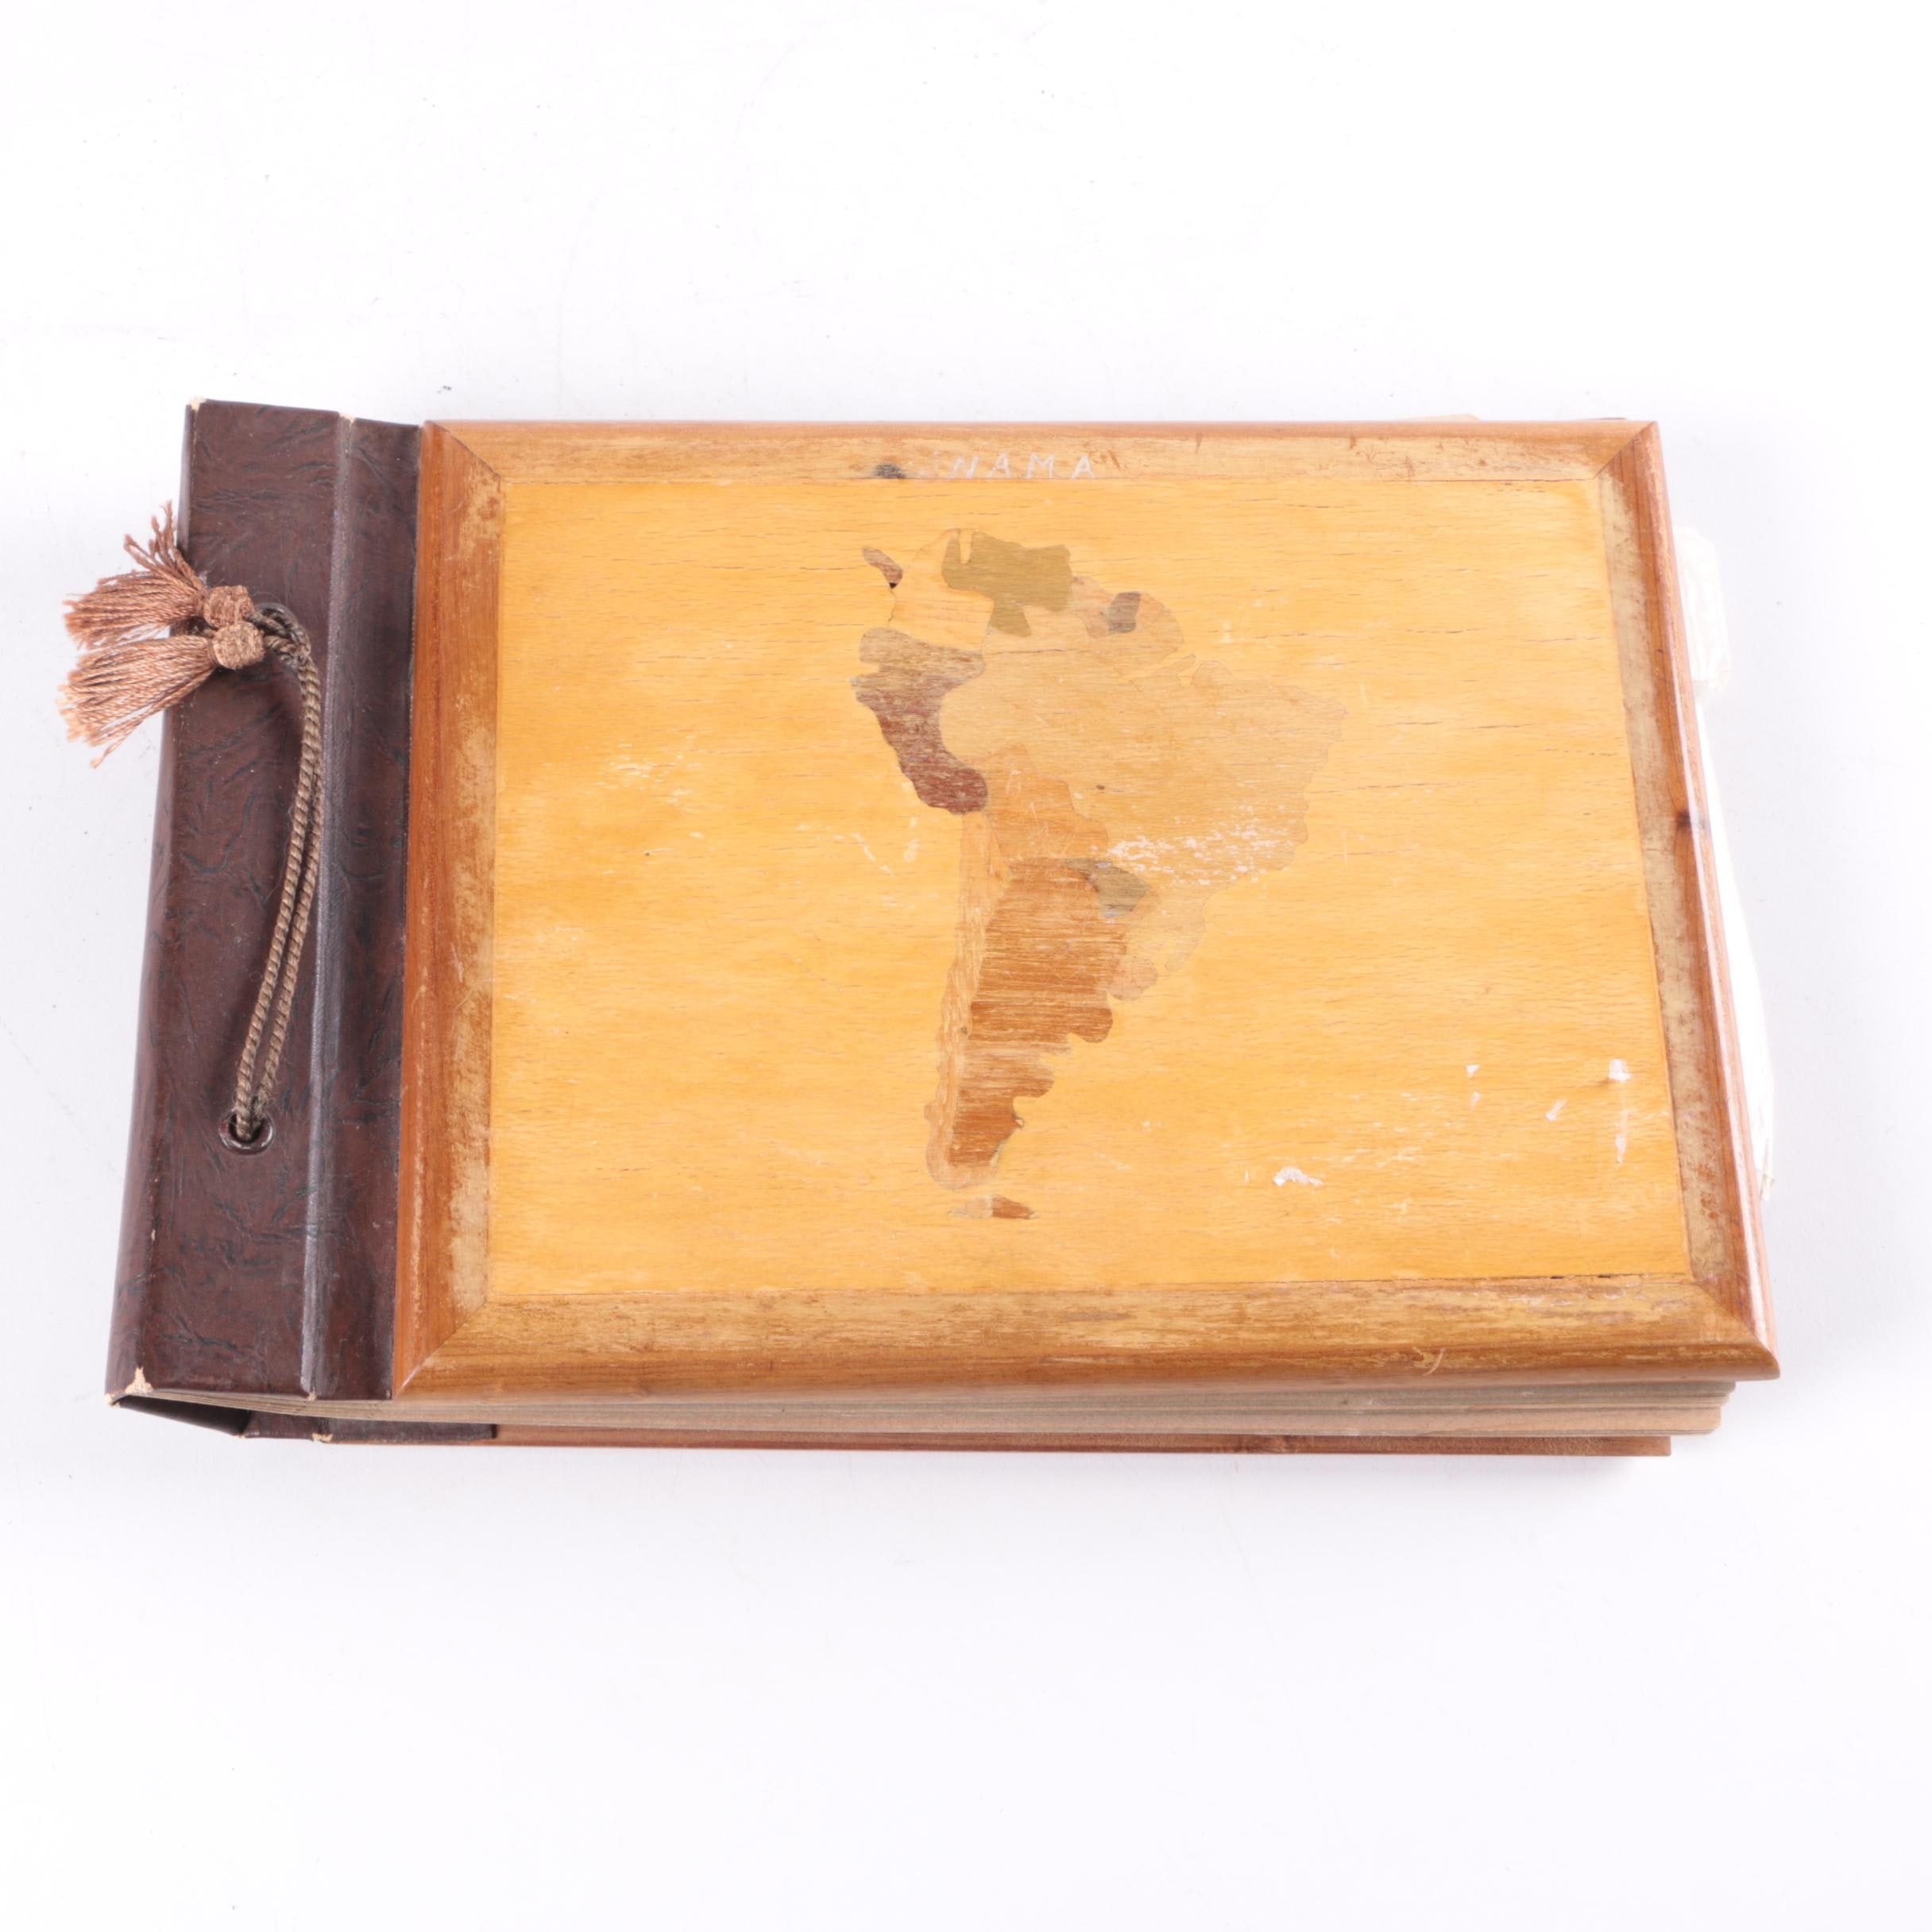 Vintage Photos In Wooden Album From Central America